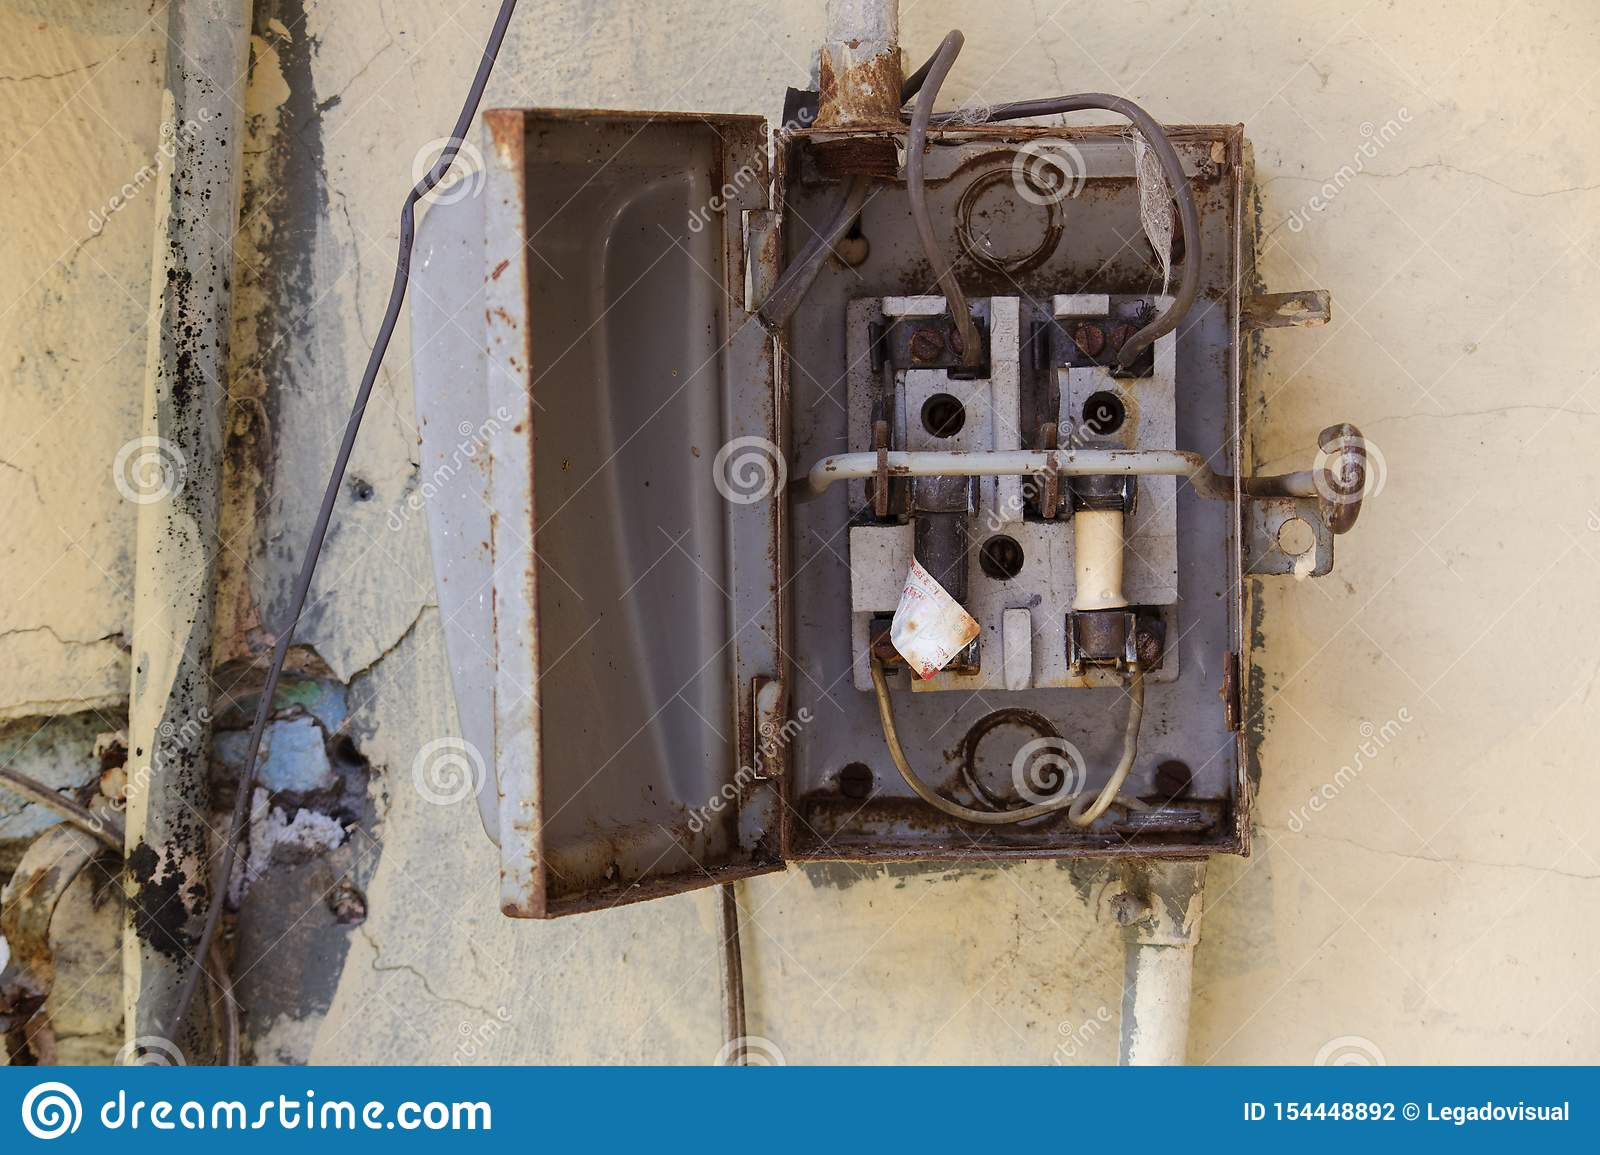 old electrical fuse boxes - wiring diagrams post skip-market -  skip-market.michelegori.it  michelegori.it